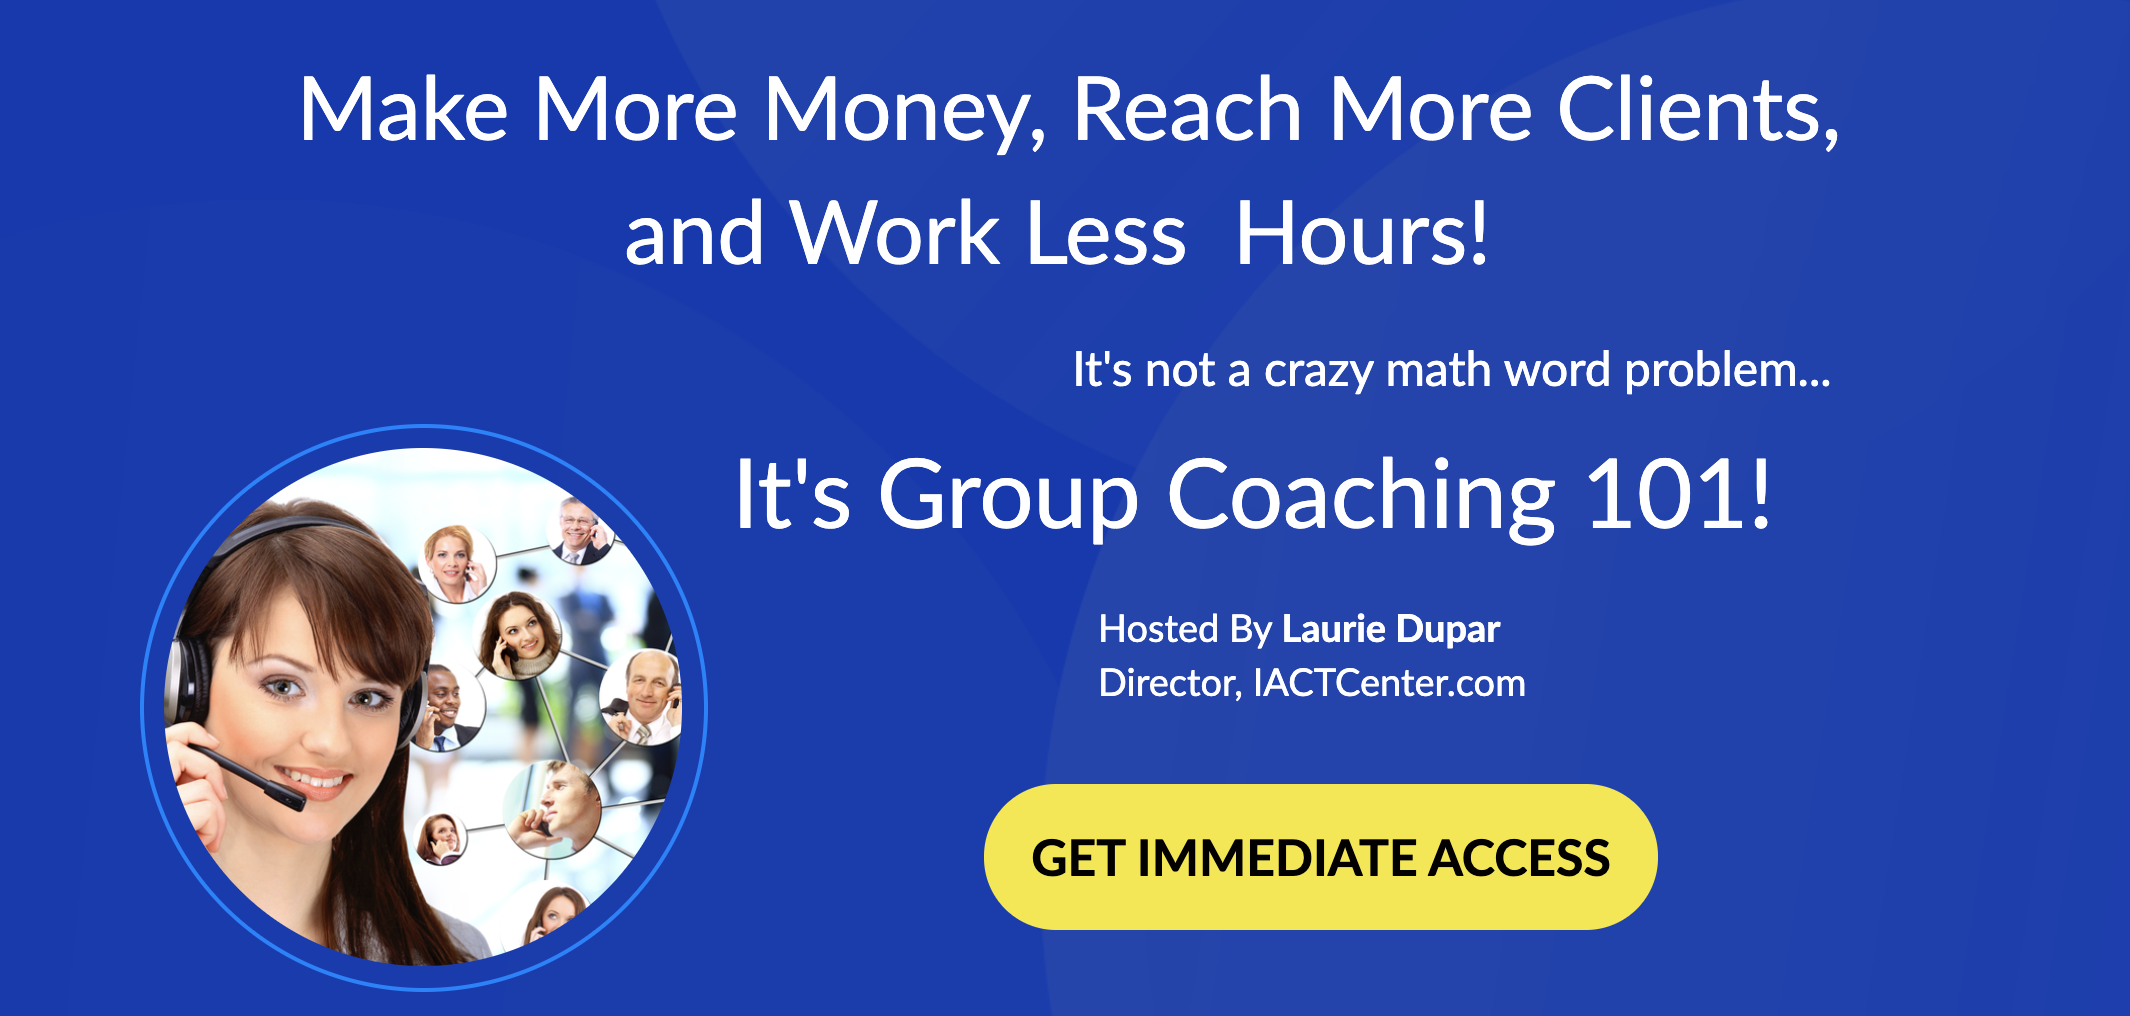 Get the specifics of who, when, what, and how of adding group coaching to your business.